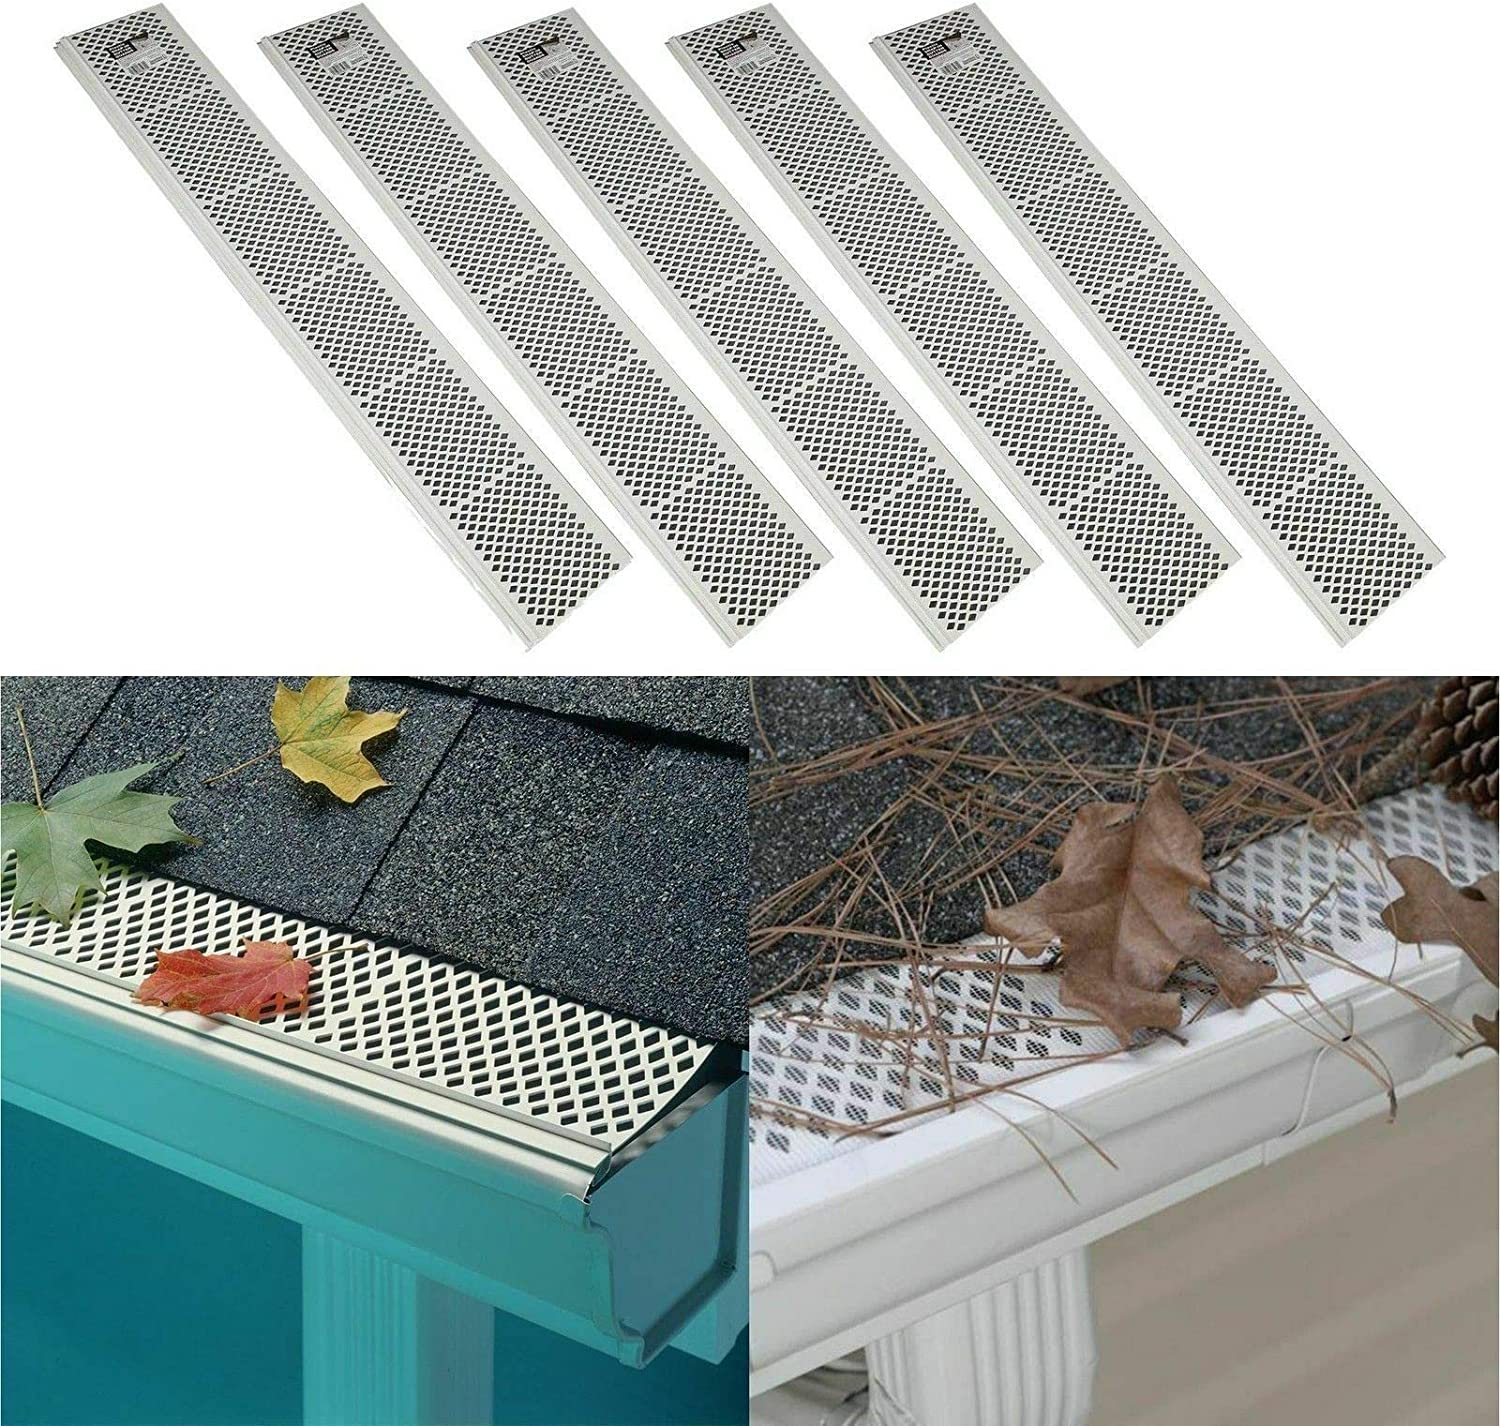 5 Pack SNAP-in White Gutter Sale SALE% OFF Guard 3ft Cover Long Beach Mall Leaf D Filter Screen